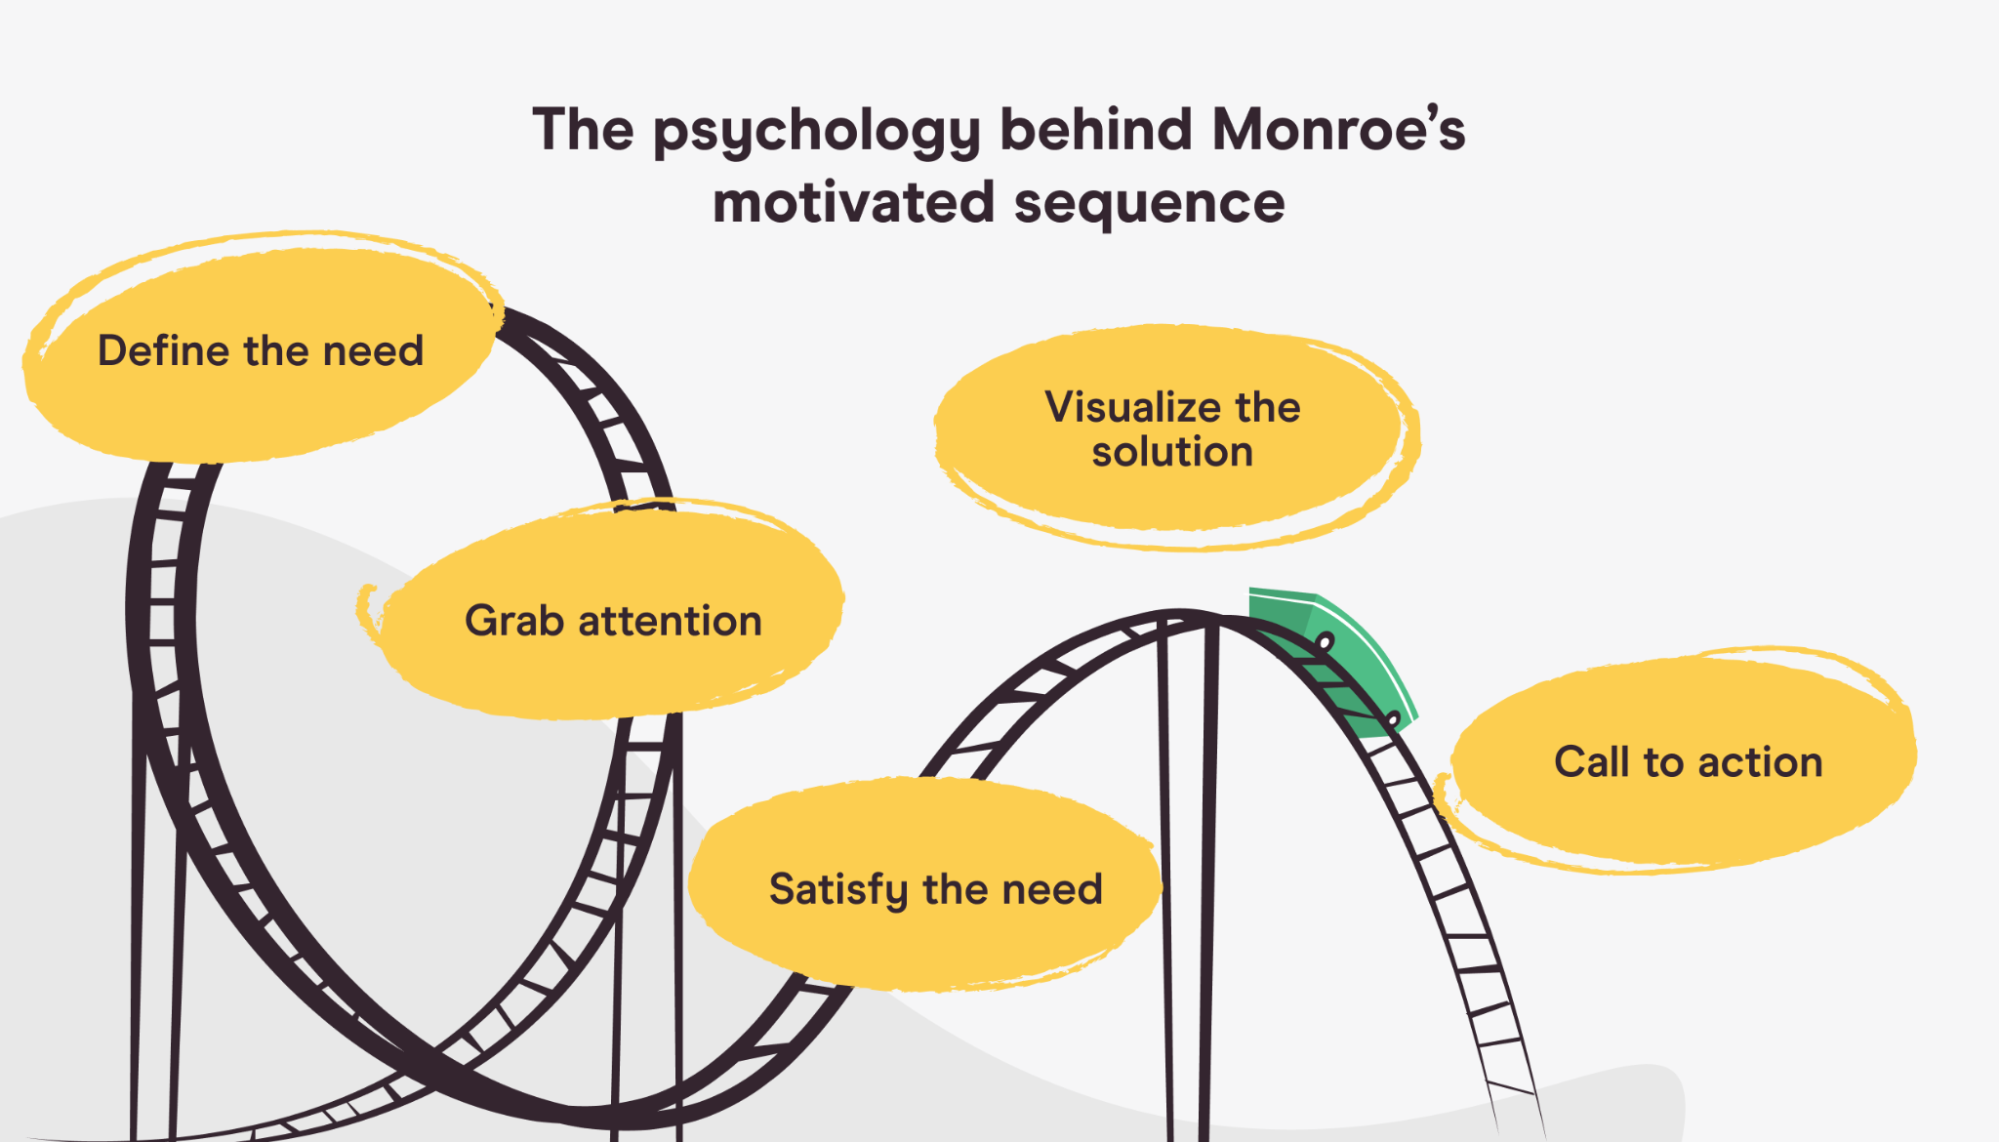 The psychology behind Monroe's motivated sequence